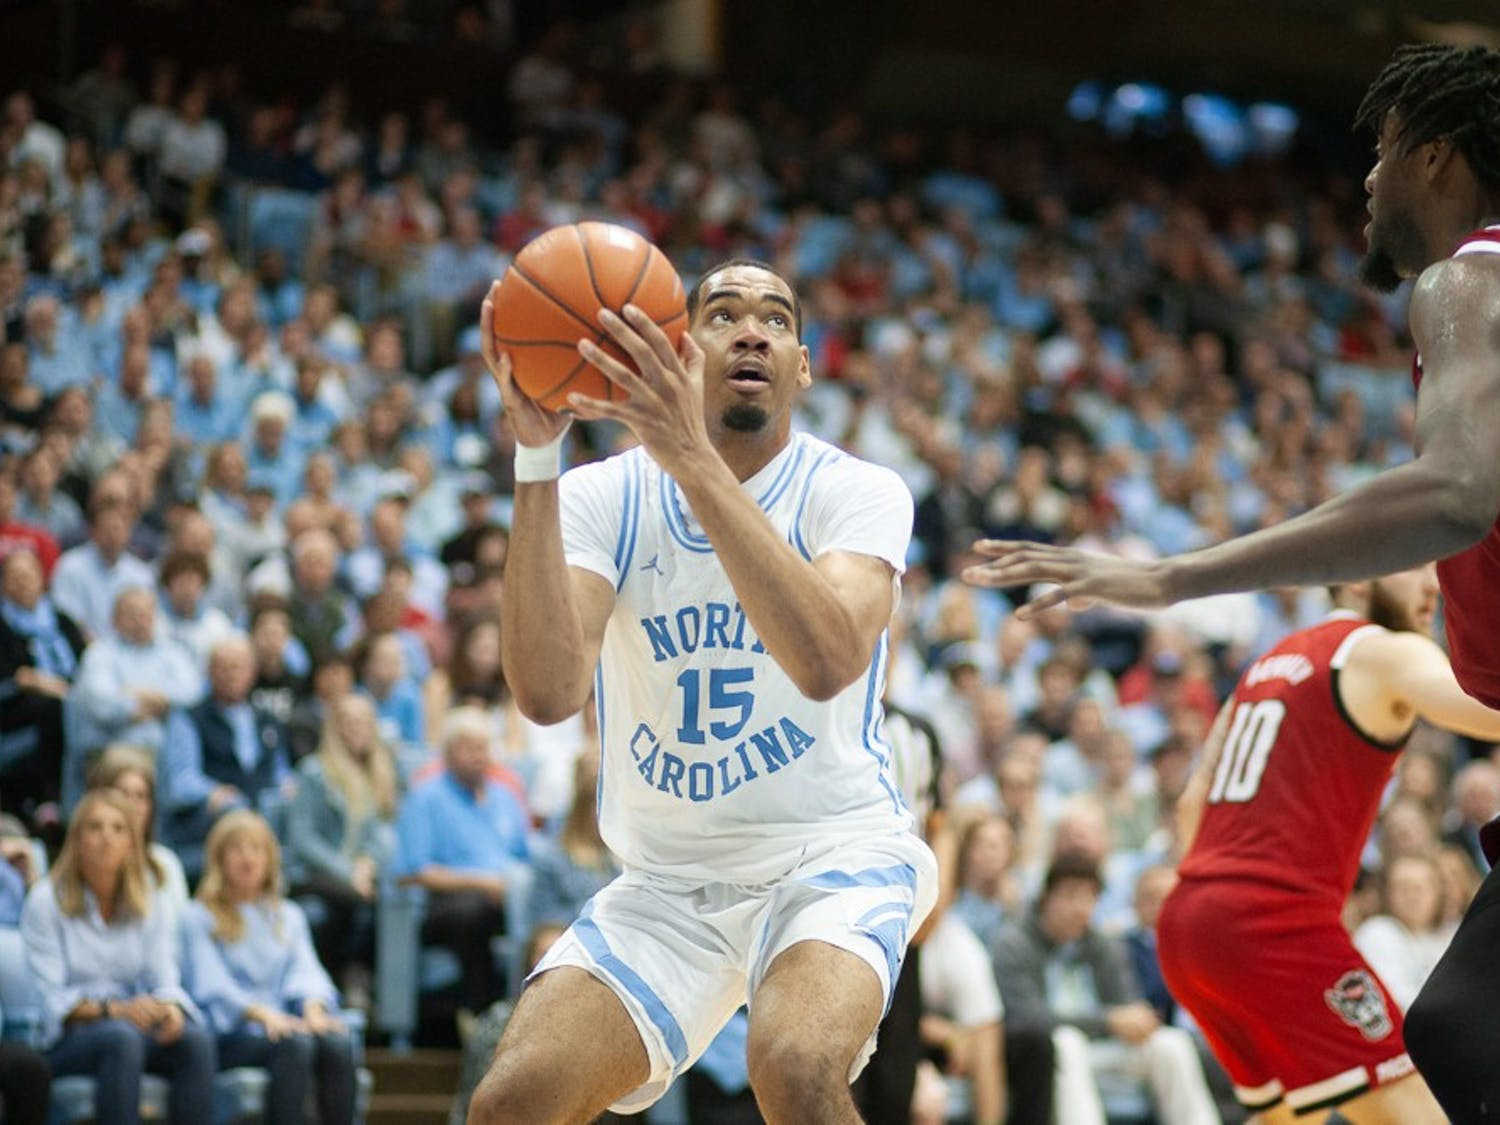 UNC junior forward Garrison Brooks (15) prepares to take a shot in the game against N.C. State in the Smith Center on Tuesday, Feb. 25, 2020.